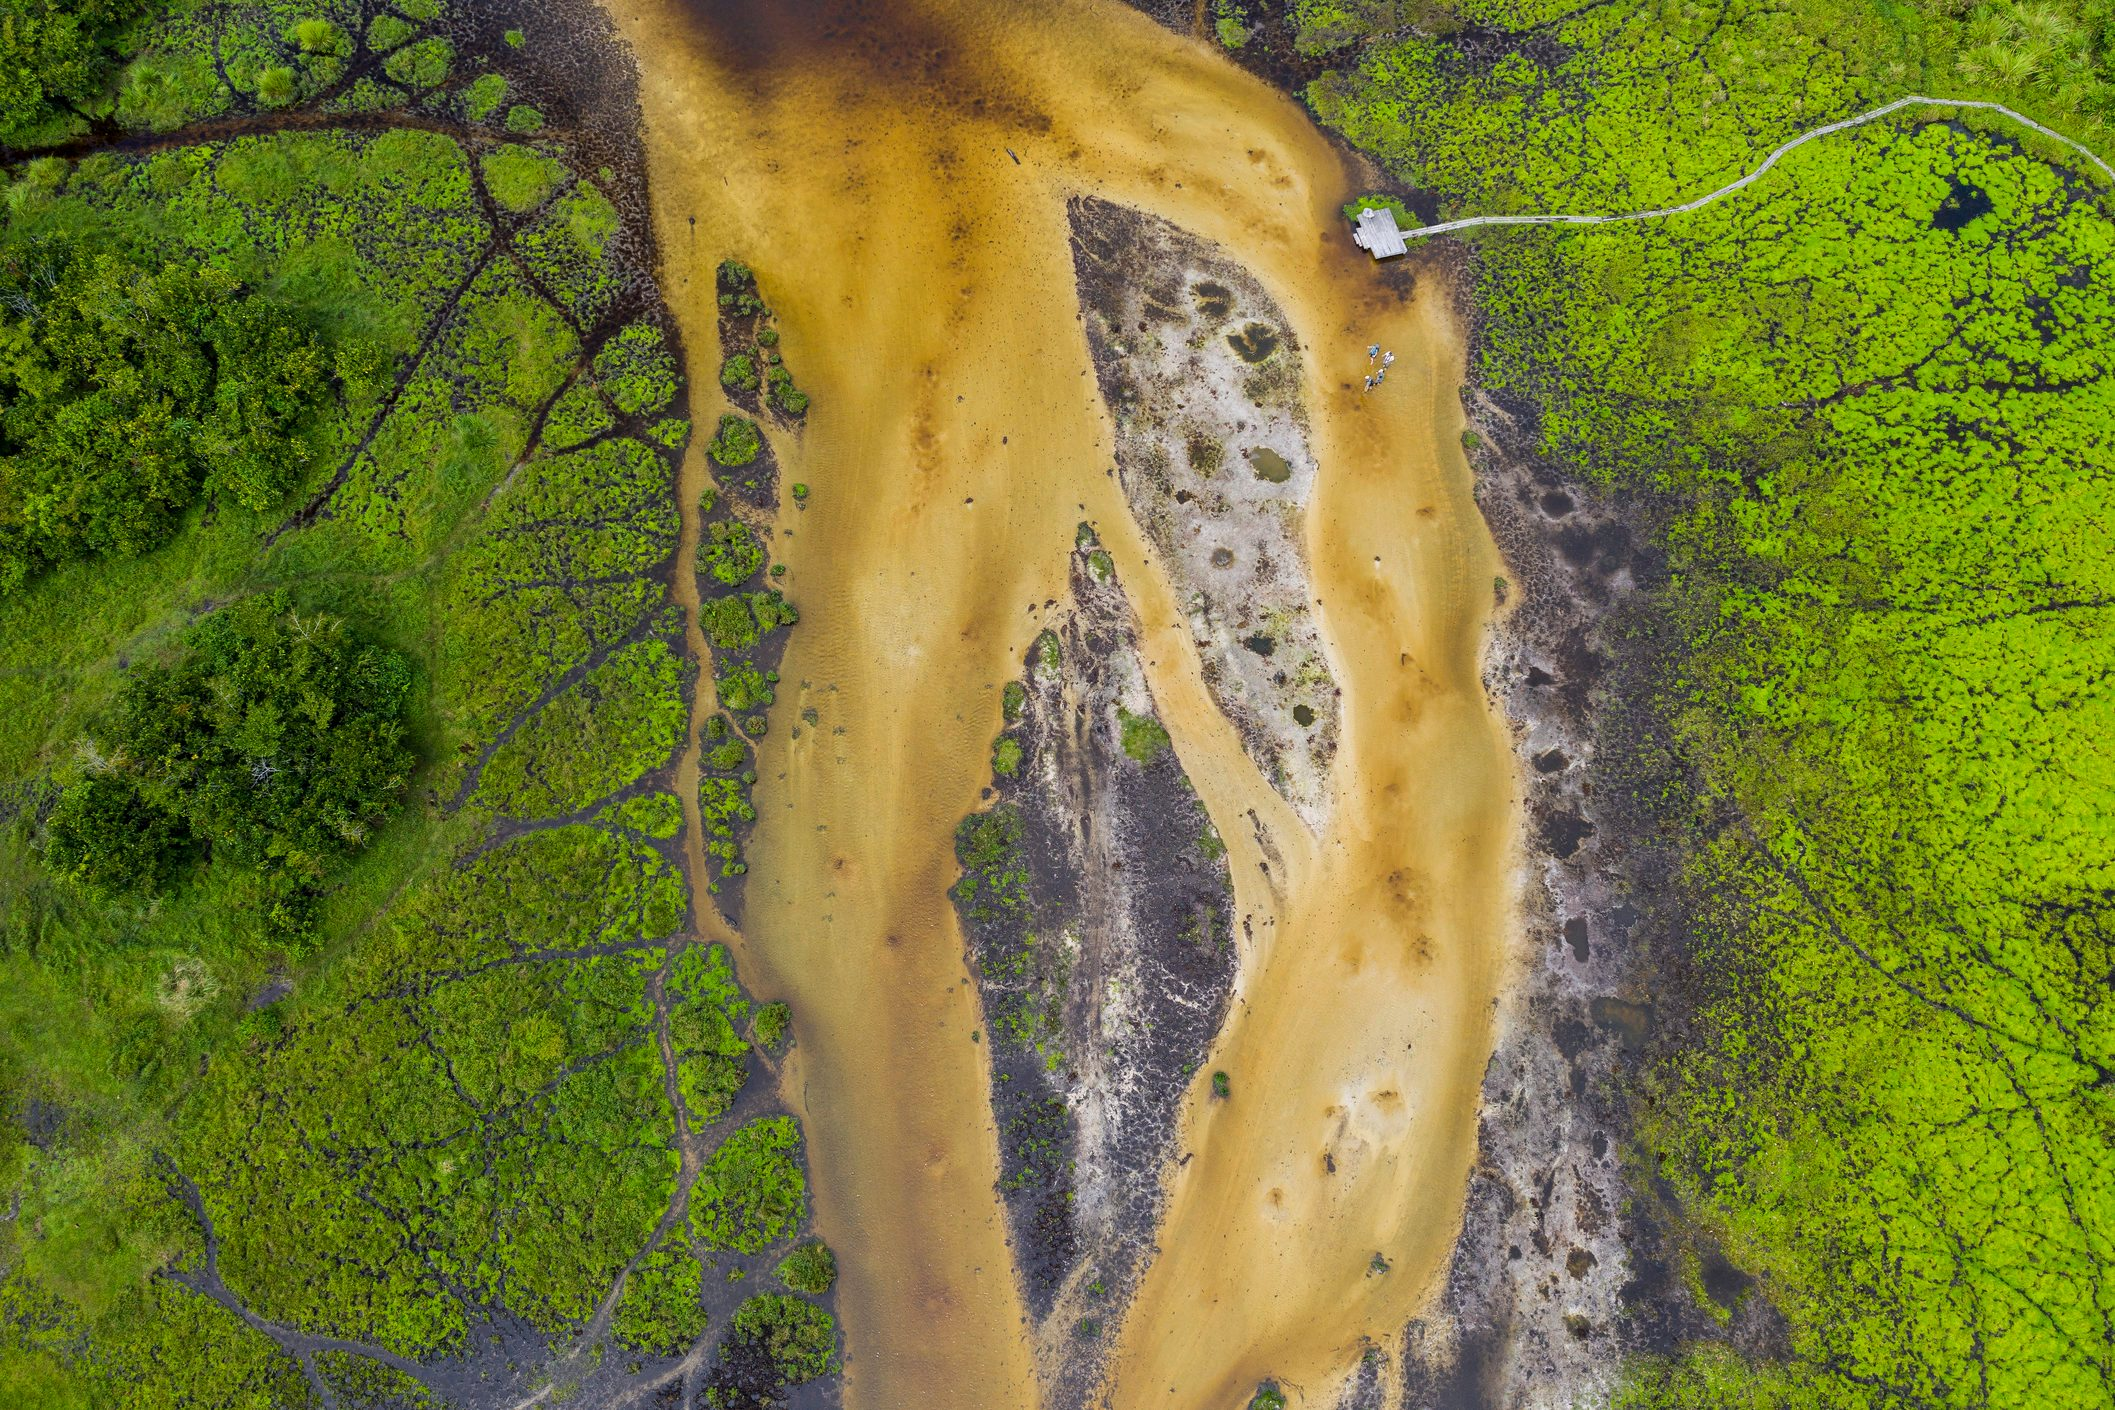 Aerial view of a bai (saline, mineral clearing) in the rainforest, Congo